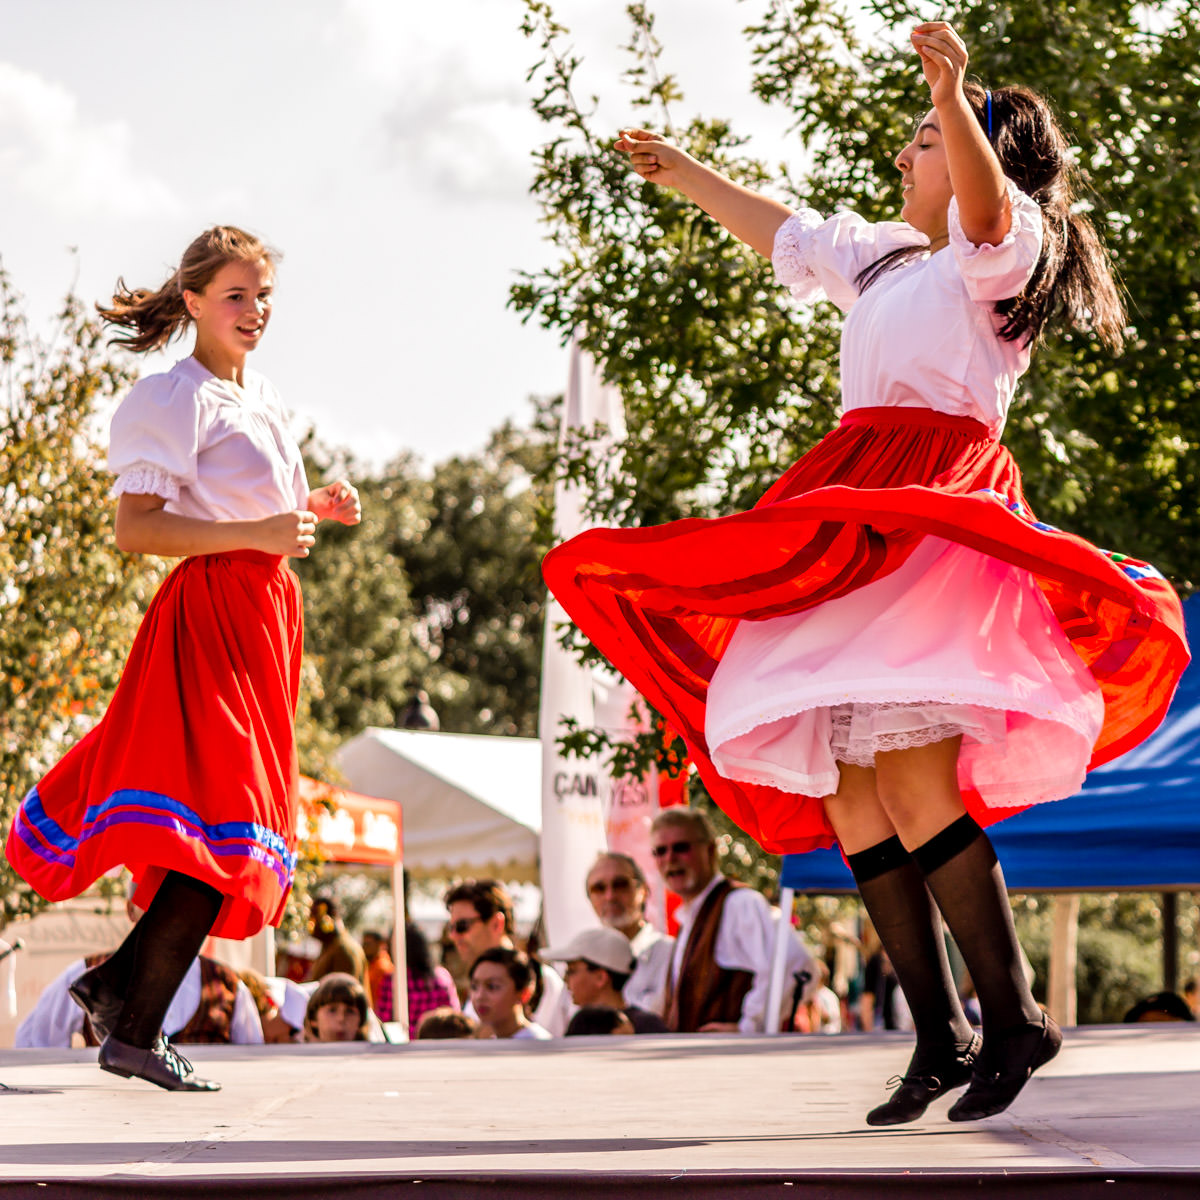 Dancers at Addison Worldfest, Addison, Texas.